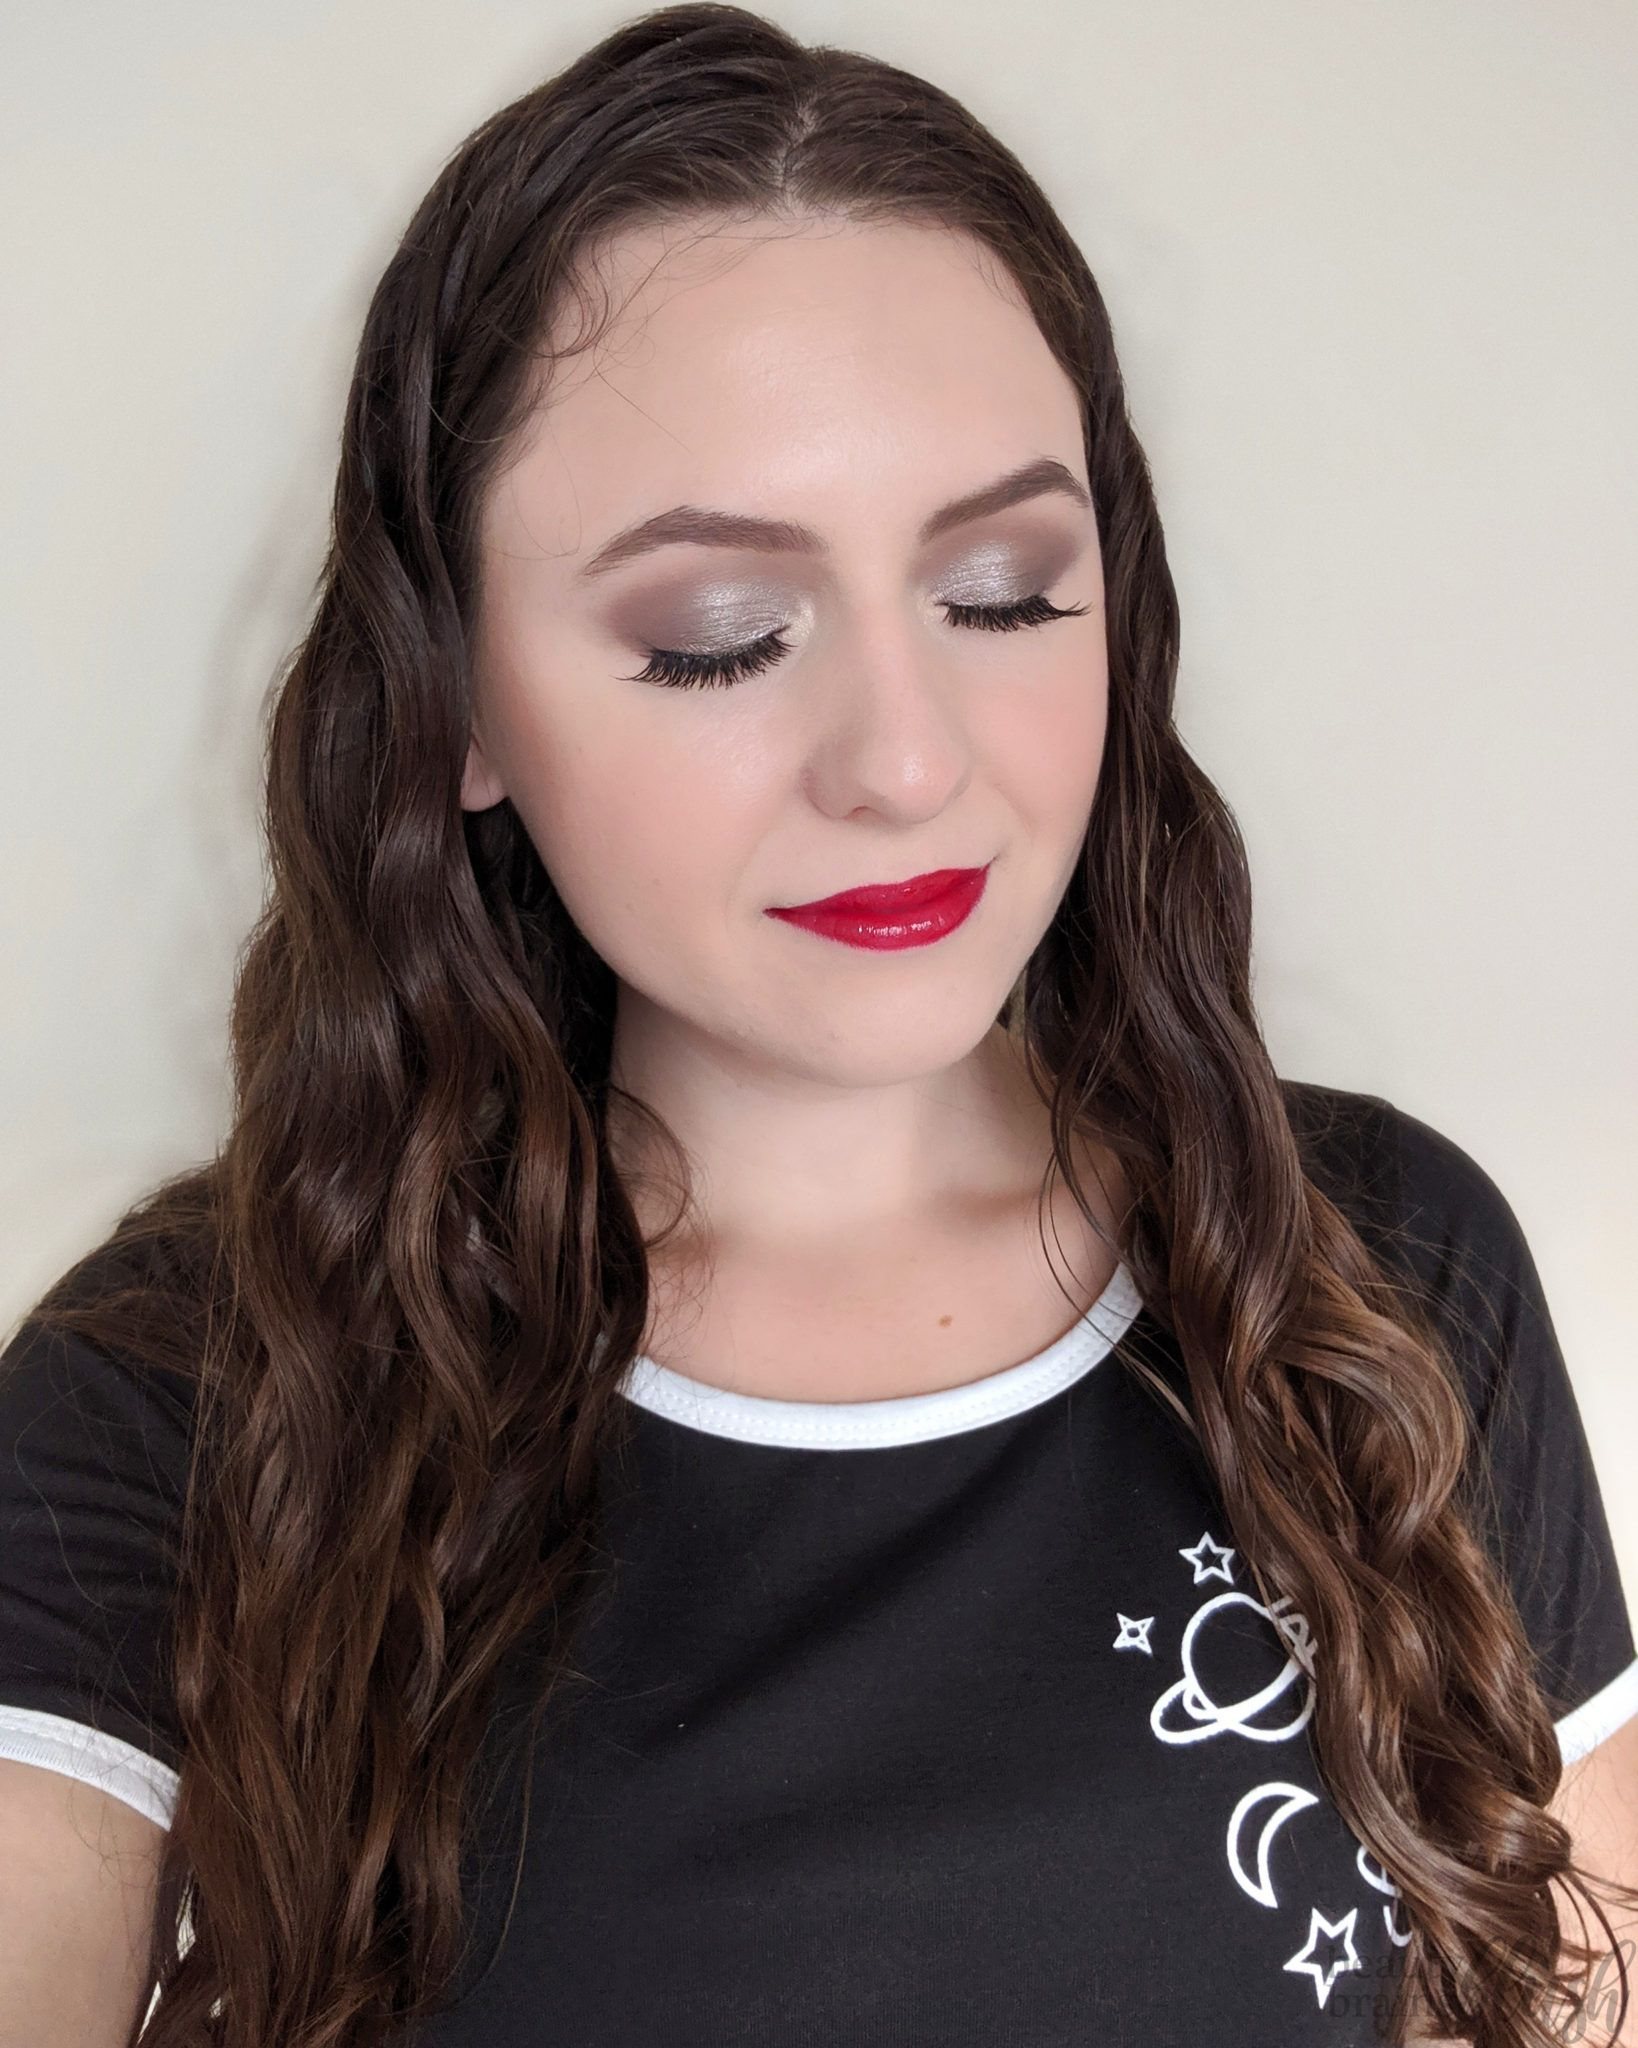 Cool Toned Glam Makeup Look Glam makeup look, Sultry